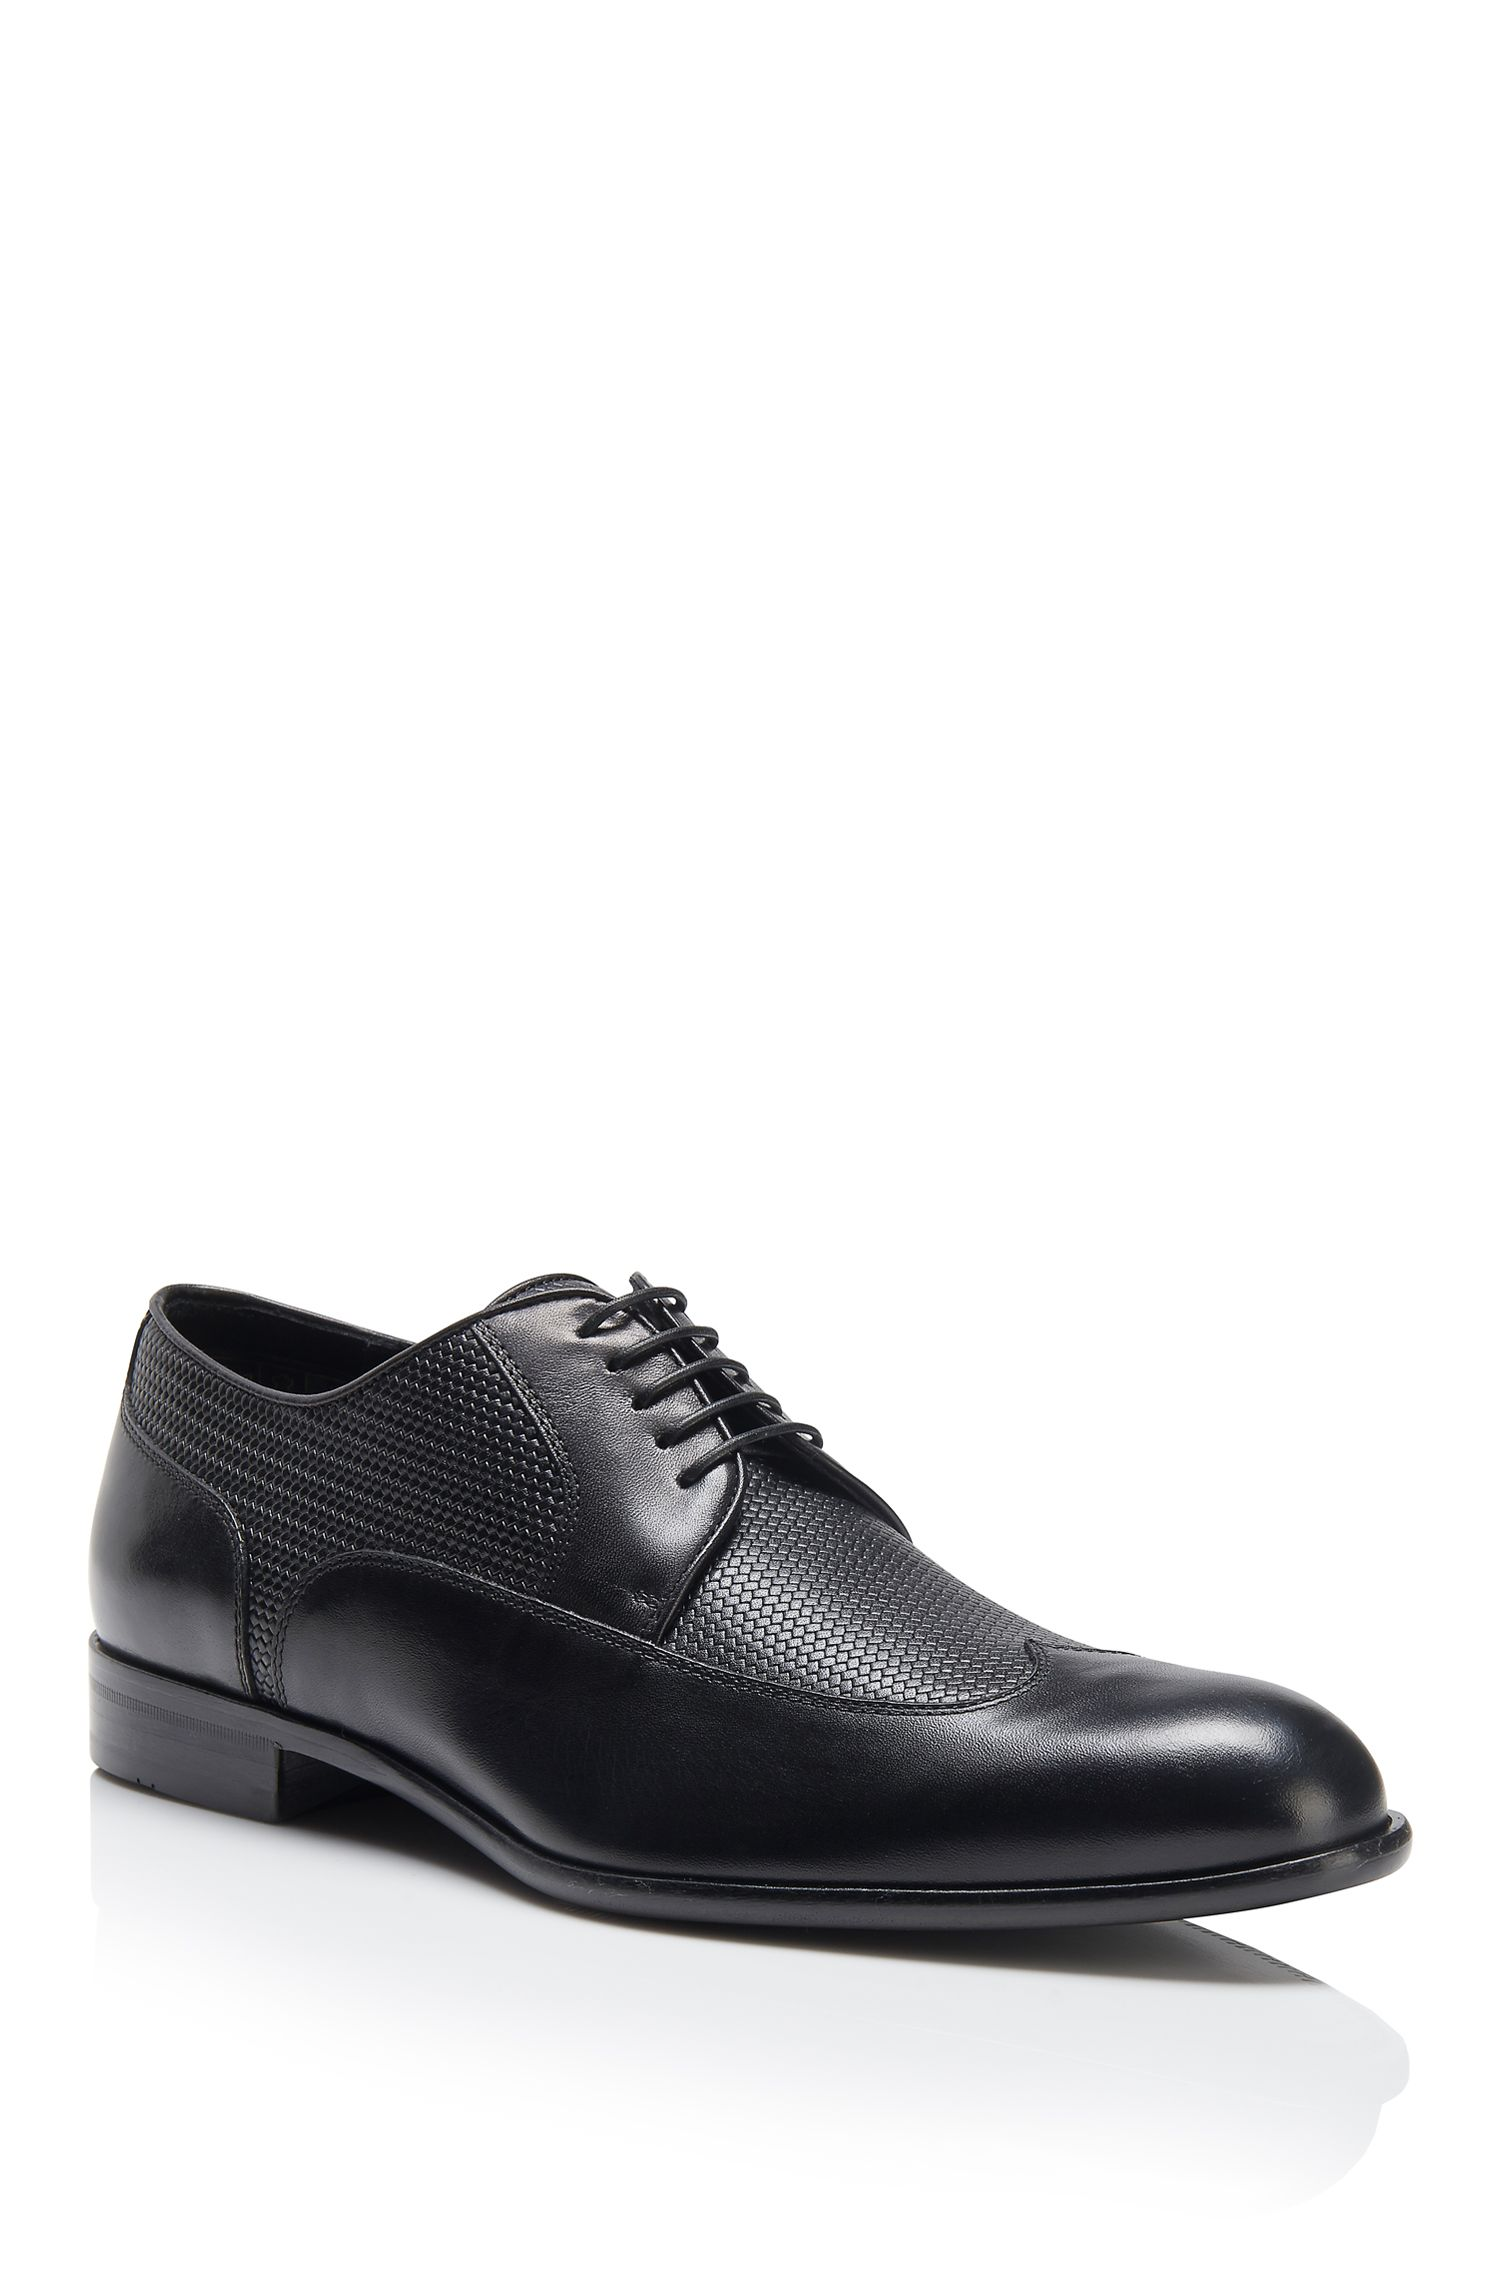 Italian Leather Wingtip Derby Dress Shoe | Maderb